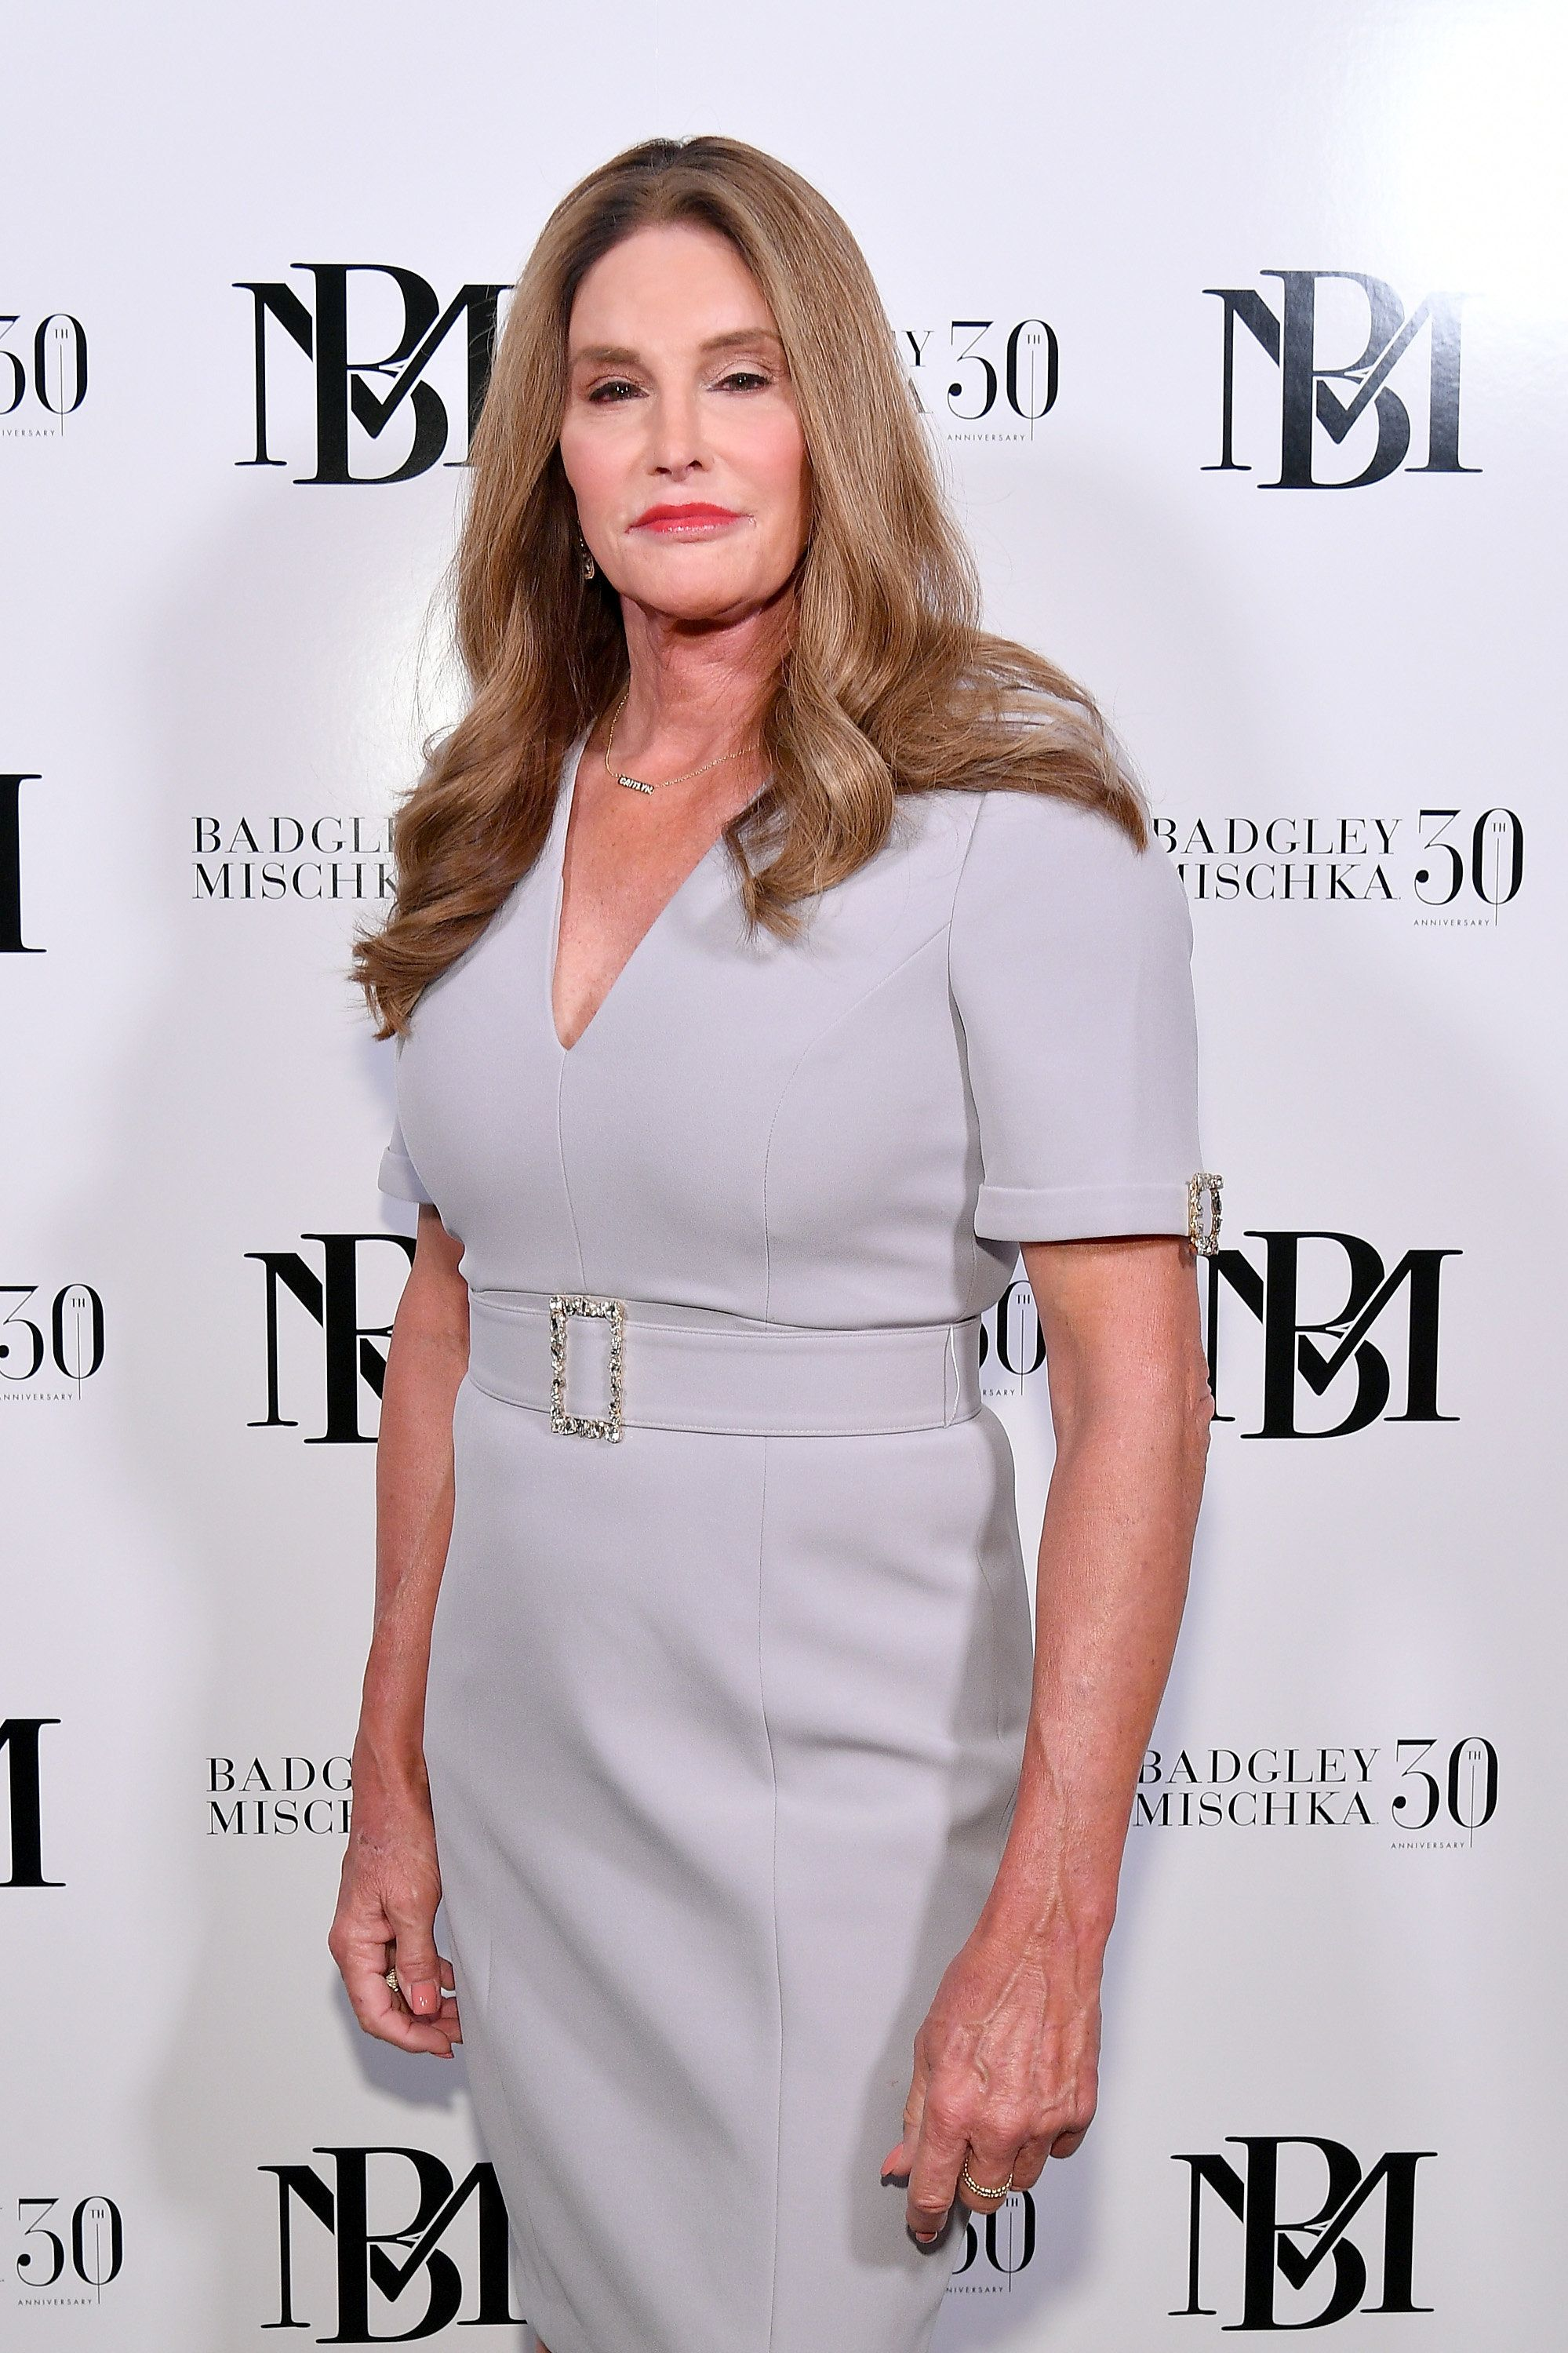 NEW YORK, NY - SEPTEMBER 08:  Caitlyn Jenner poses backstage at the Badgley Mischka show during New York Fashion Week: The Shows at Gallery I at Spring Studios on September 8, 2018 in New York City.  (Photo by Dia Dipasupil/Getty Images)